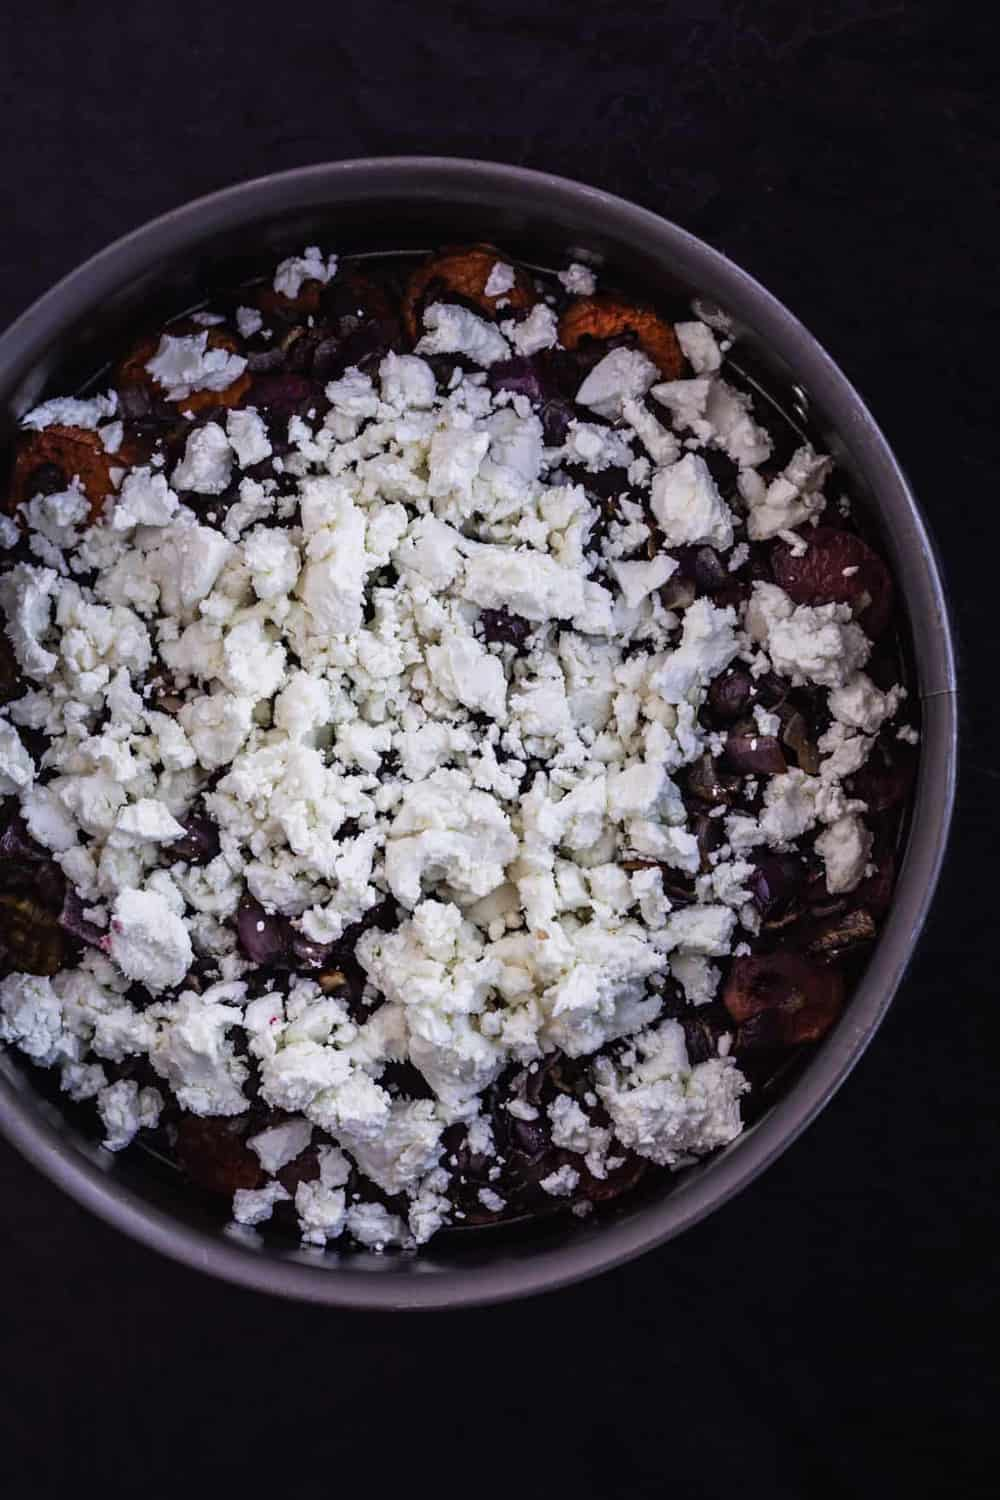 Tart pan with glaze, root vegetables, and goat cheese. In process shot of the tart being assembled.